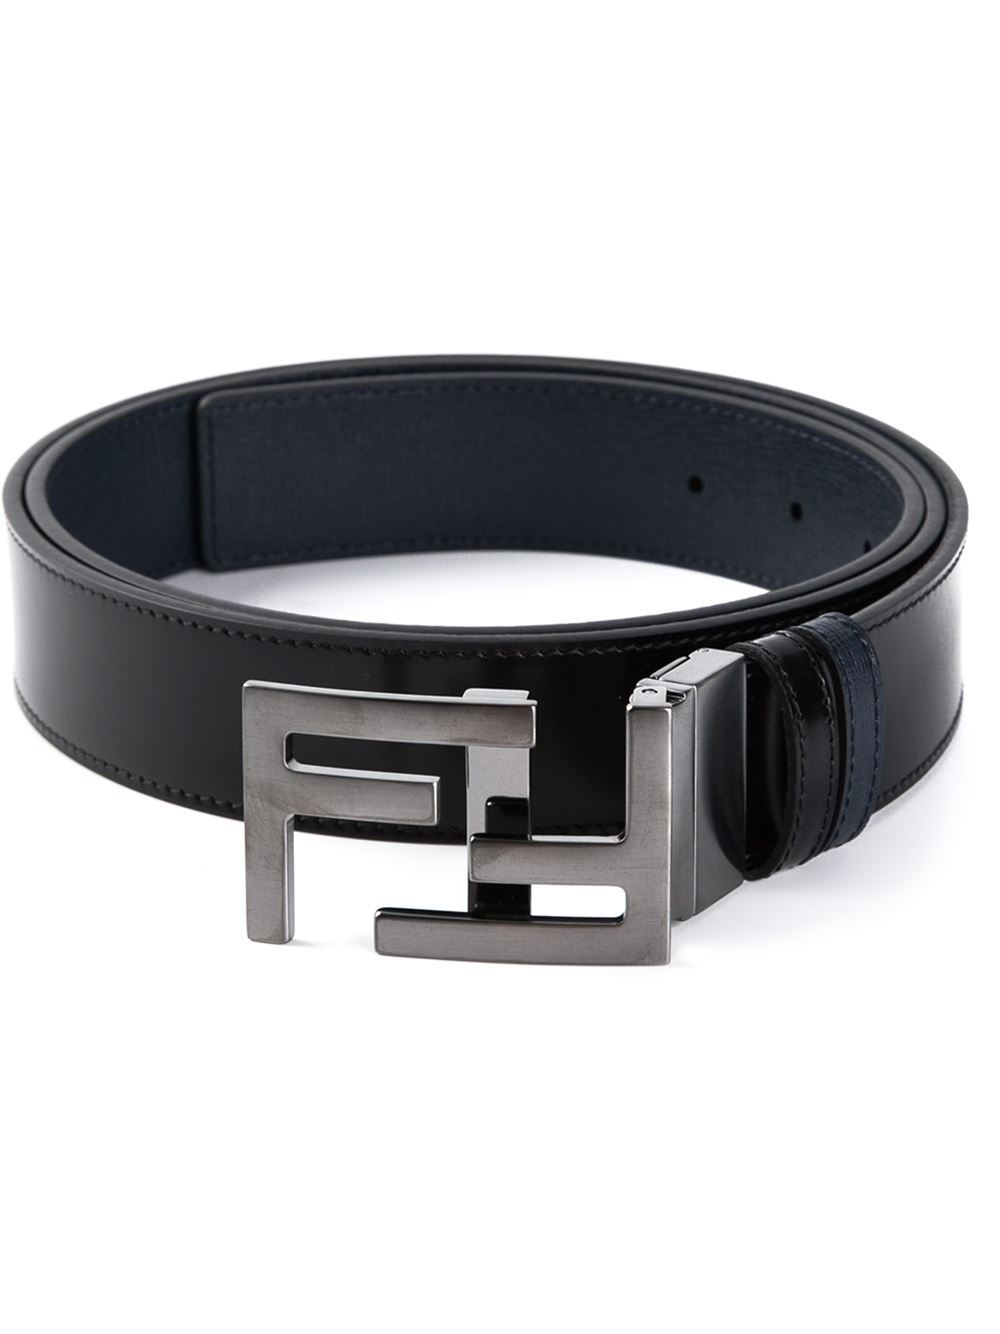 lyst fendi logo buckle leather belt in black for men